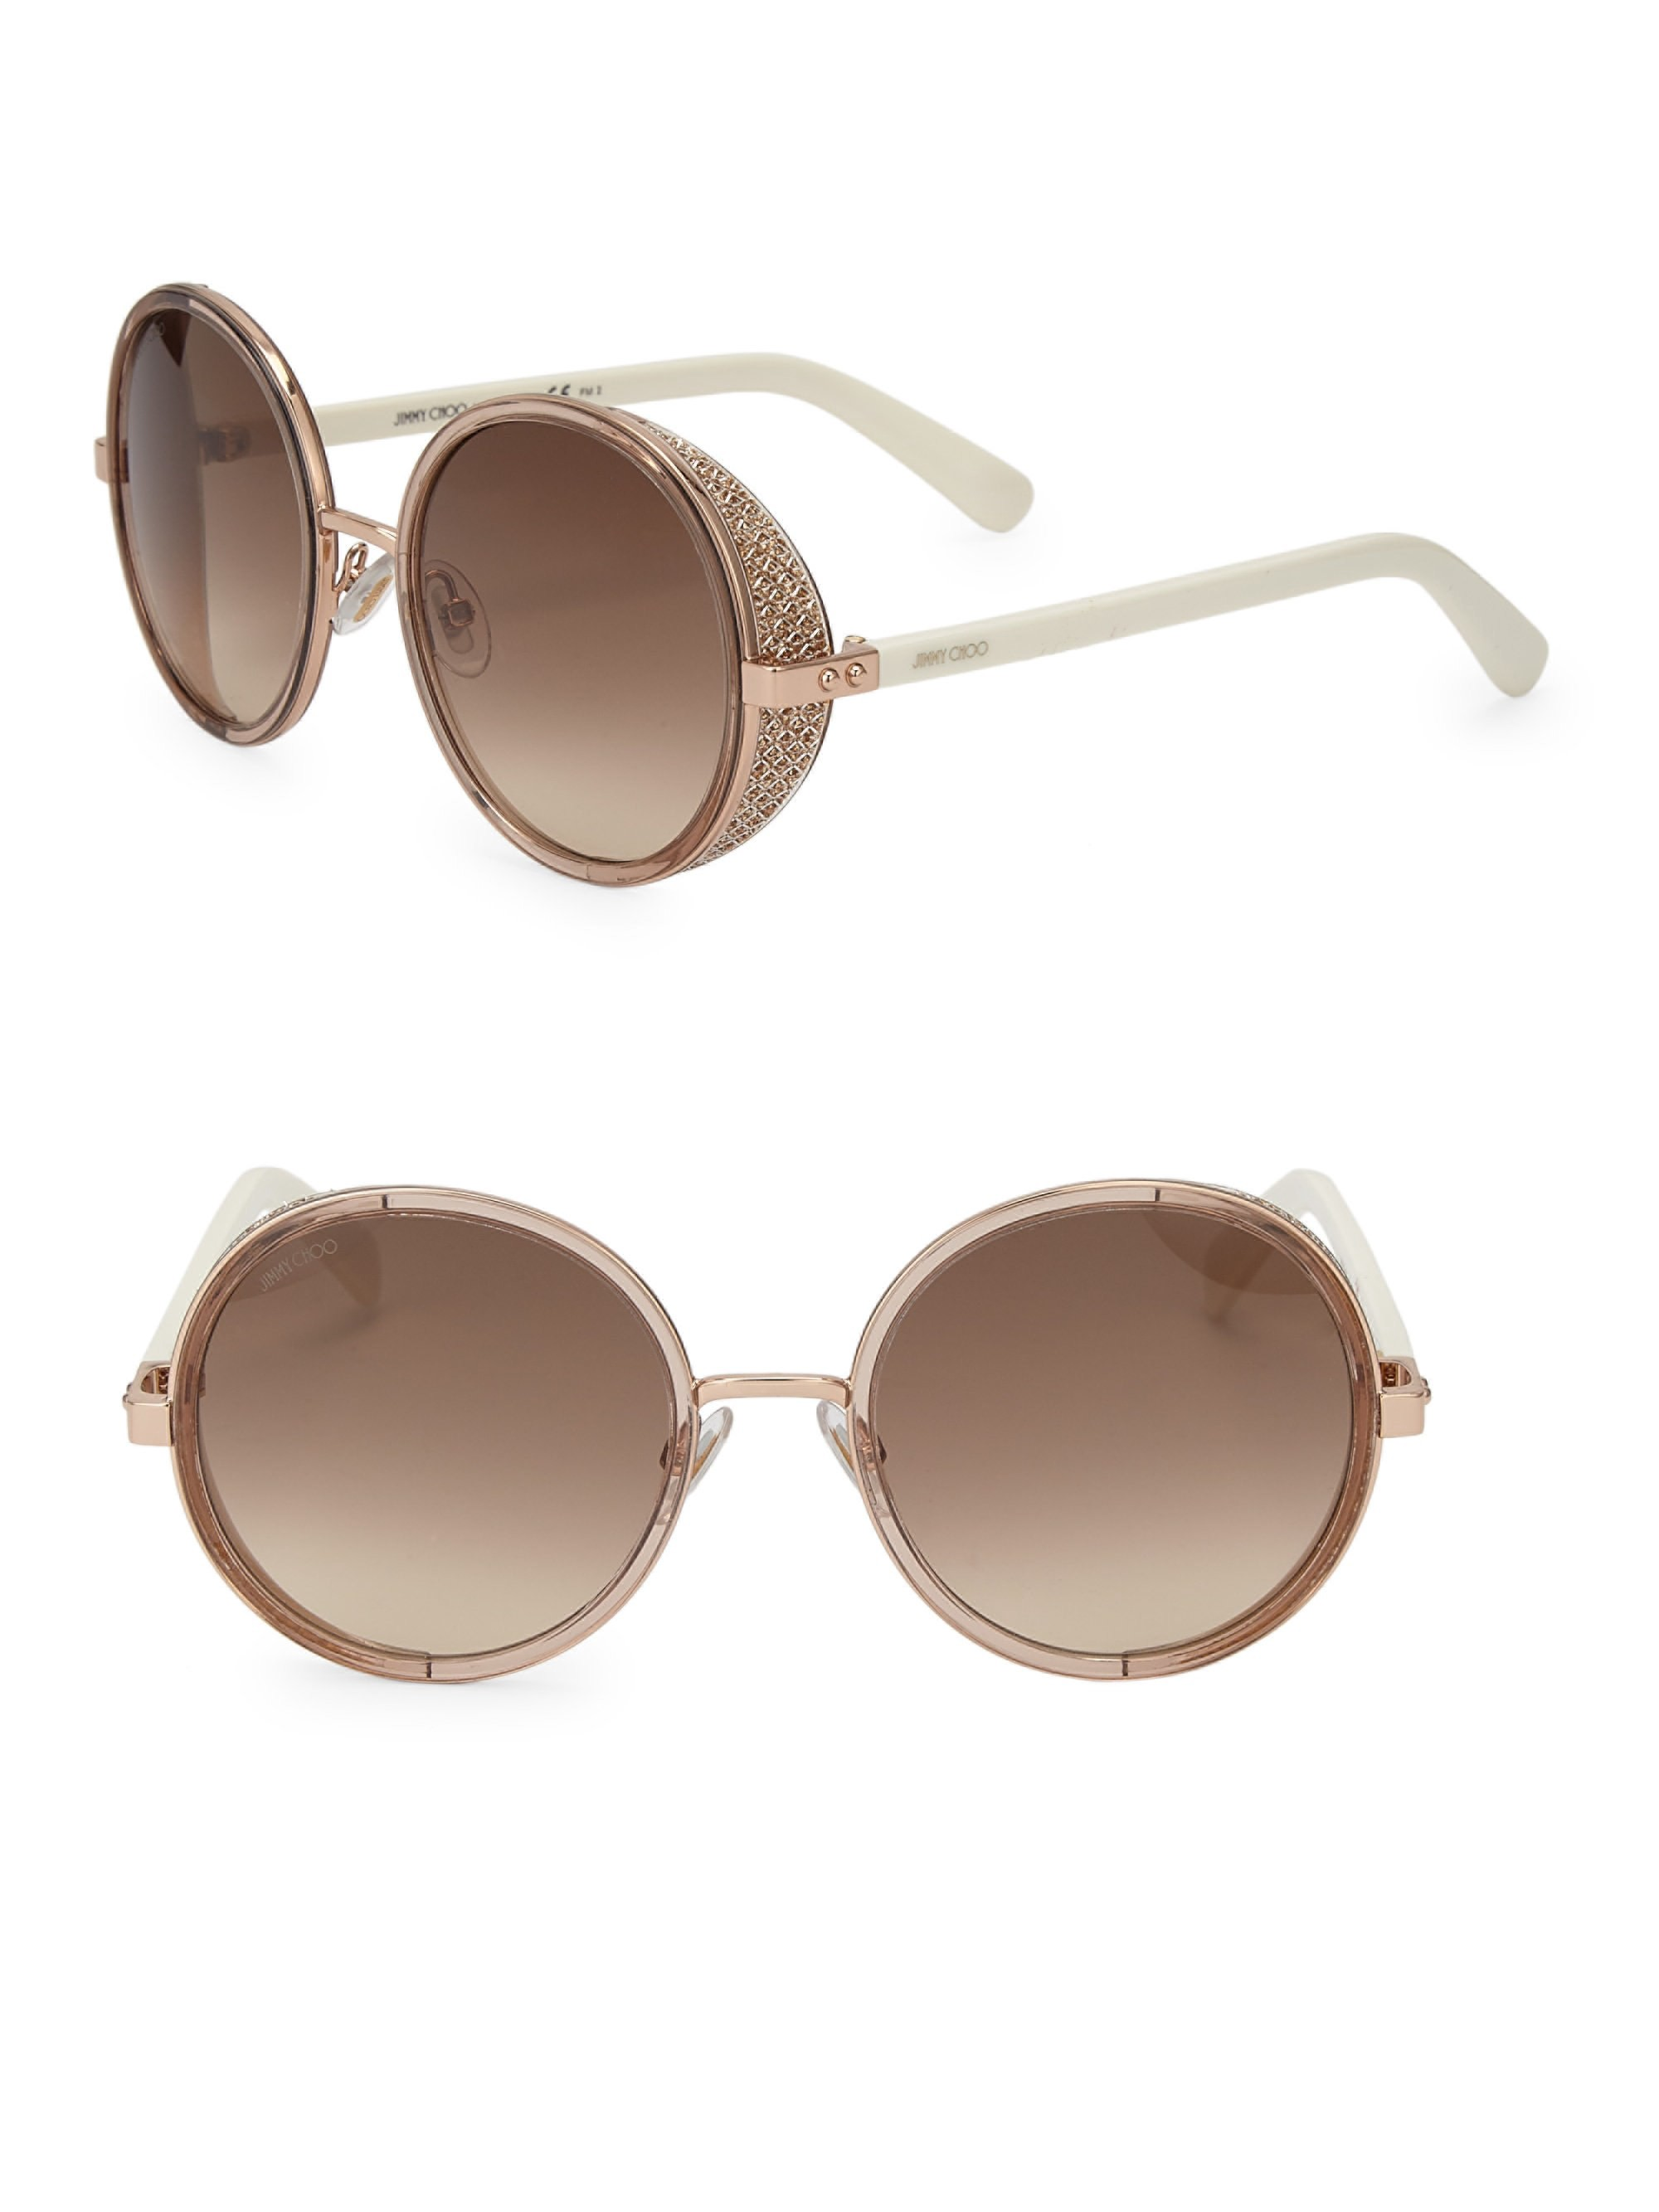 6a674b0ac27be Jimmy Choo Andie 54Mm Round Crystal-Detail Sunglasses - Black One Size Brown